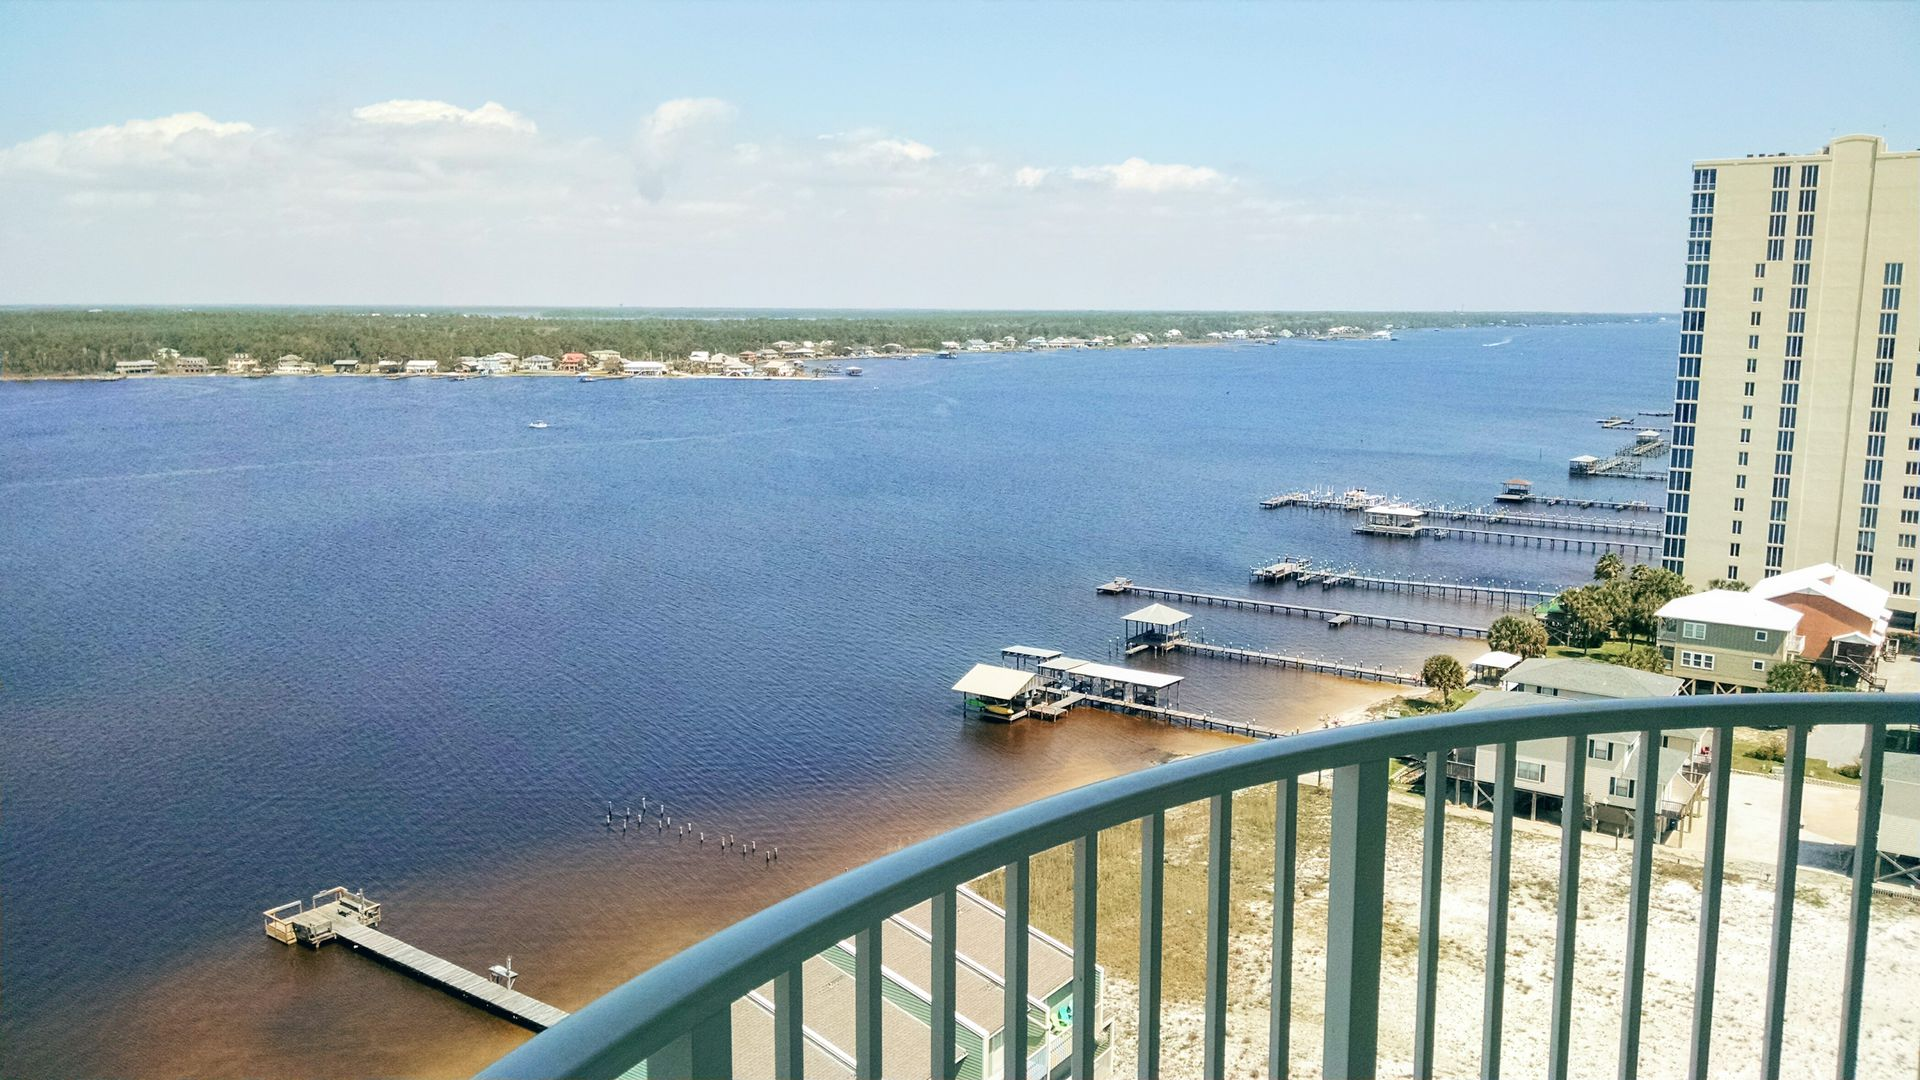 Picture of the Lagoon from the Balcony.